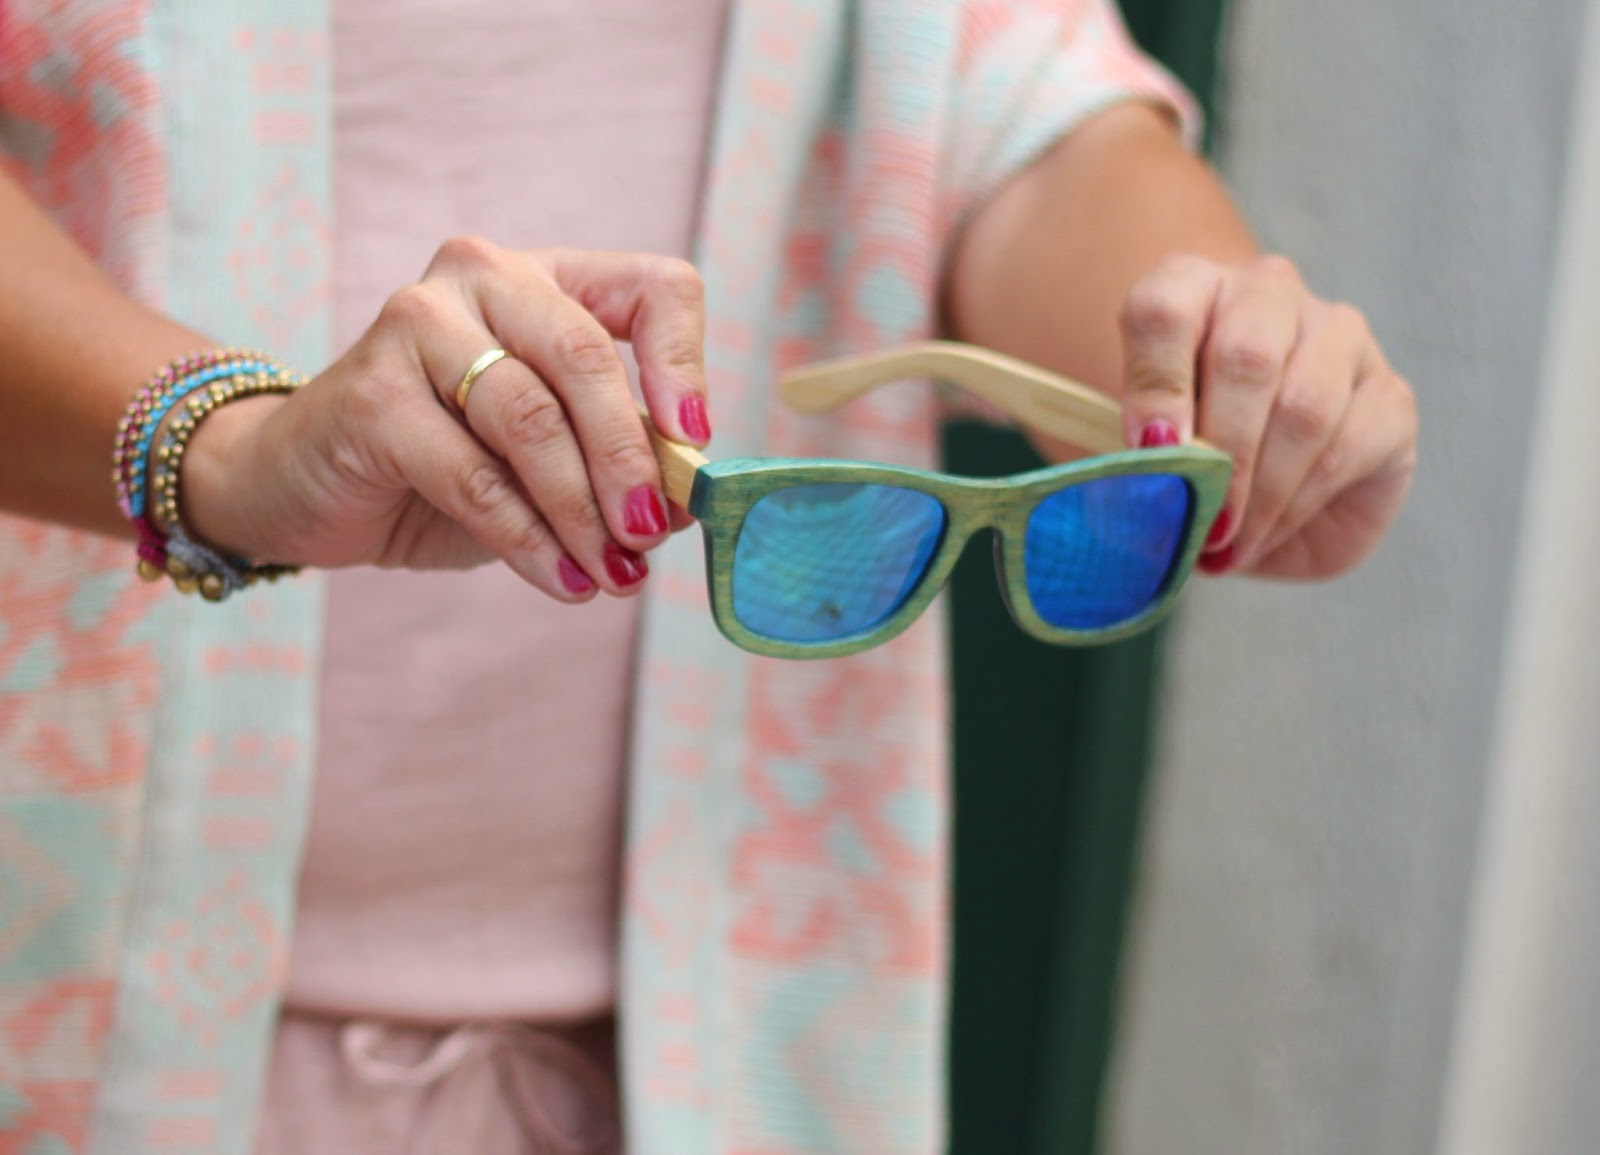 photo-root-wood-mirrow-sunglasses